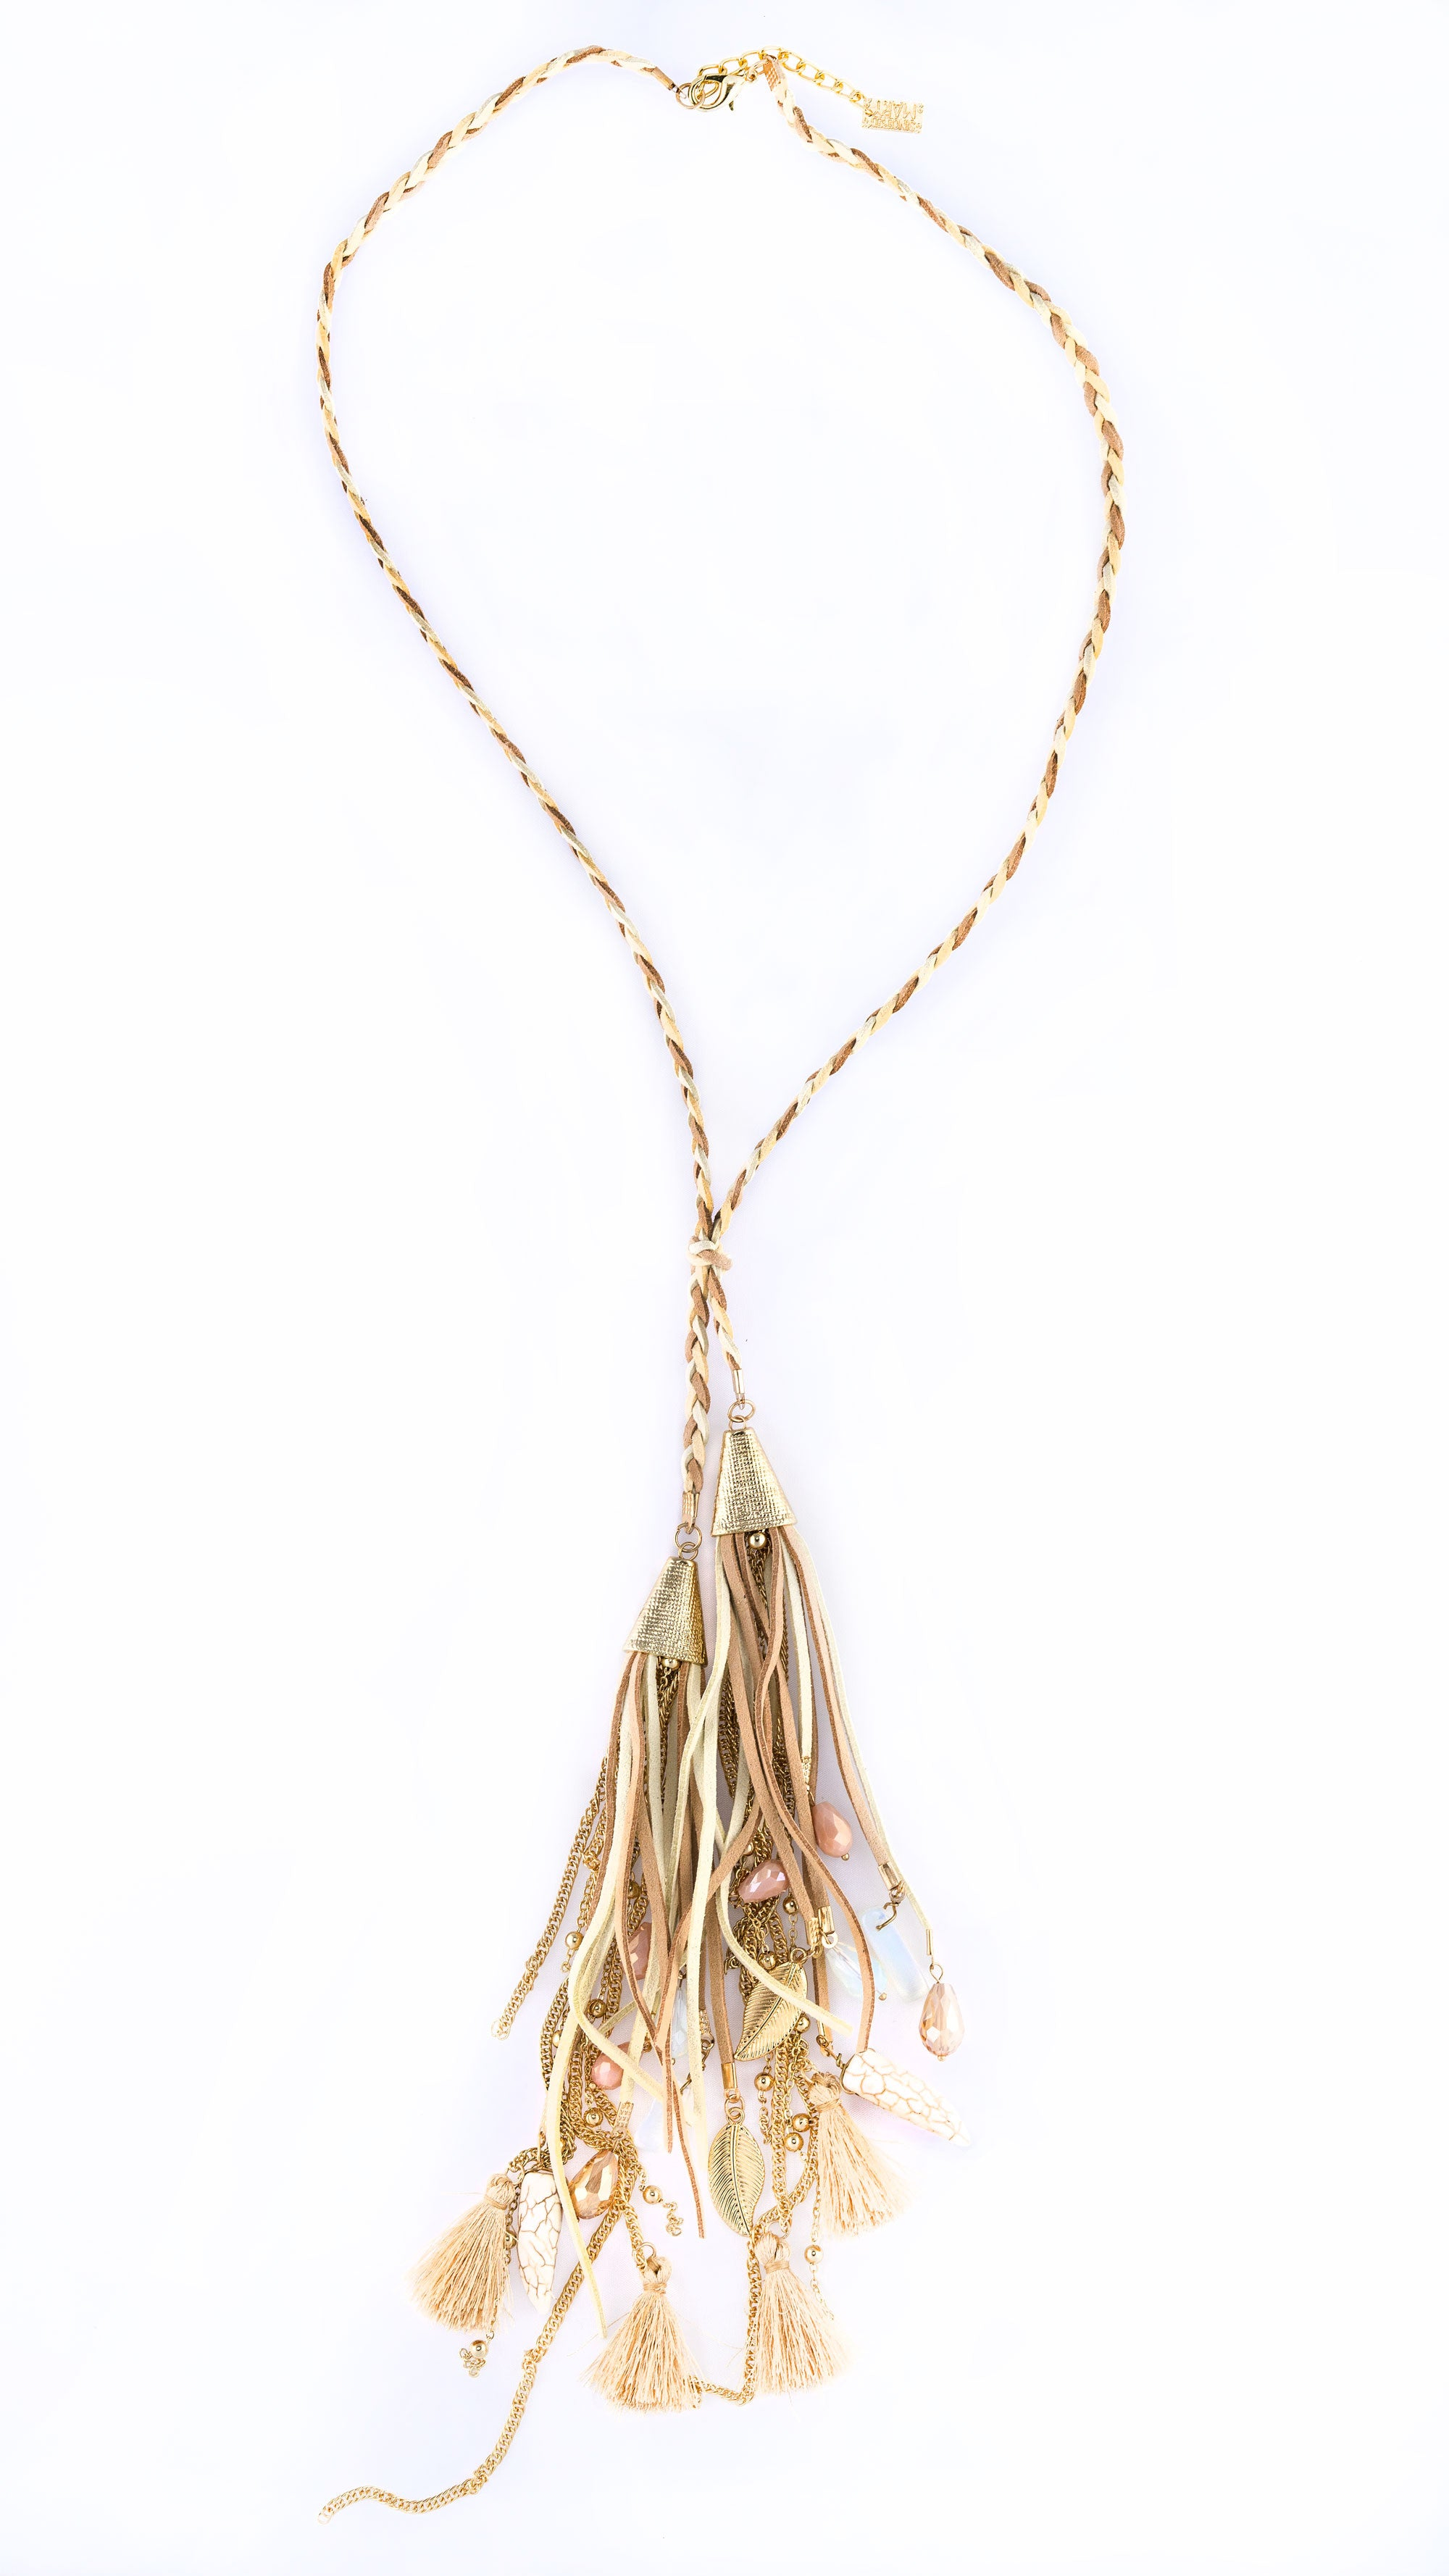 serenity products tassel backstory designs necklace tasselnecklace